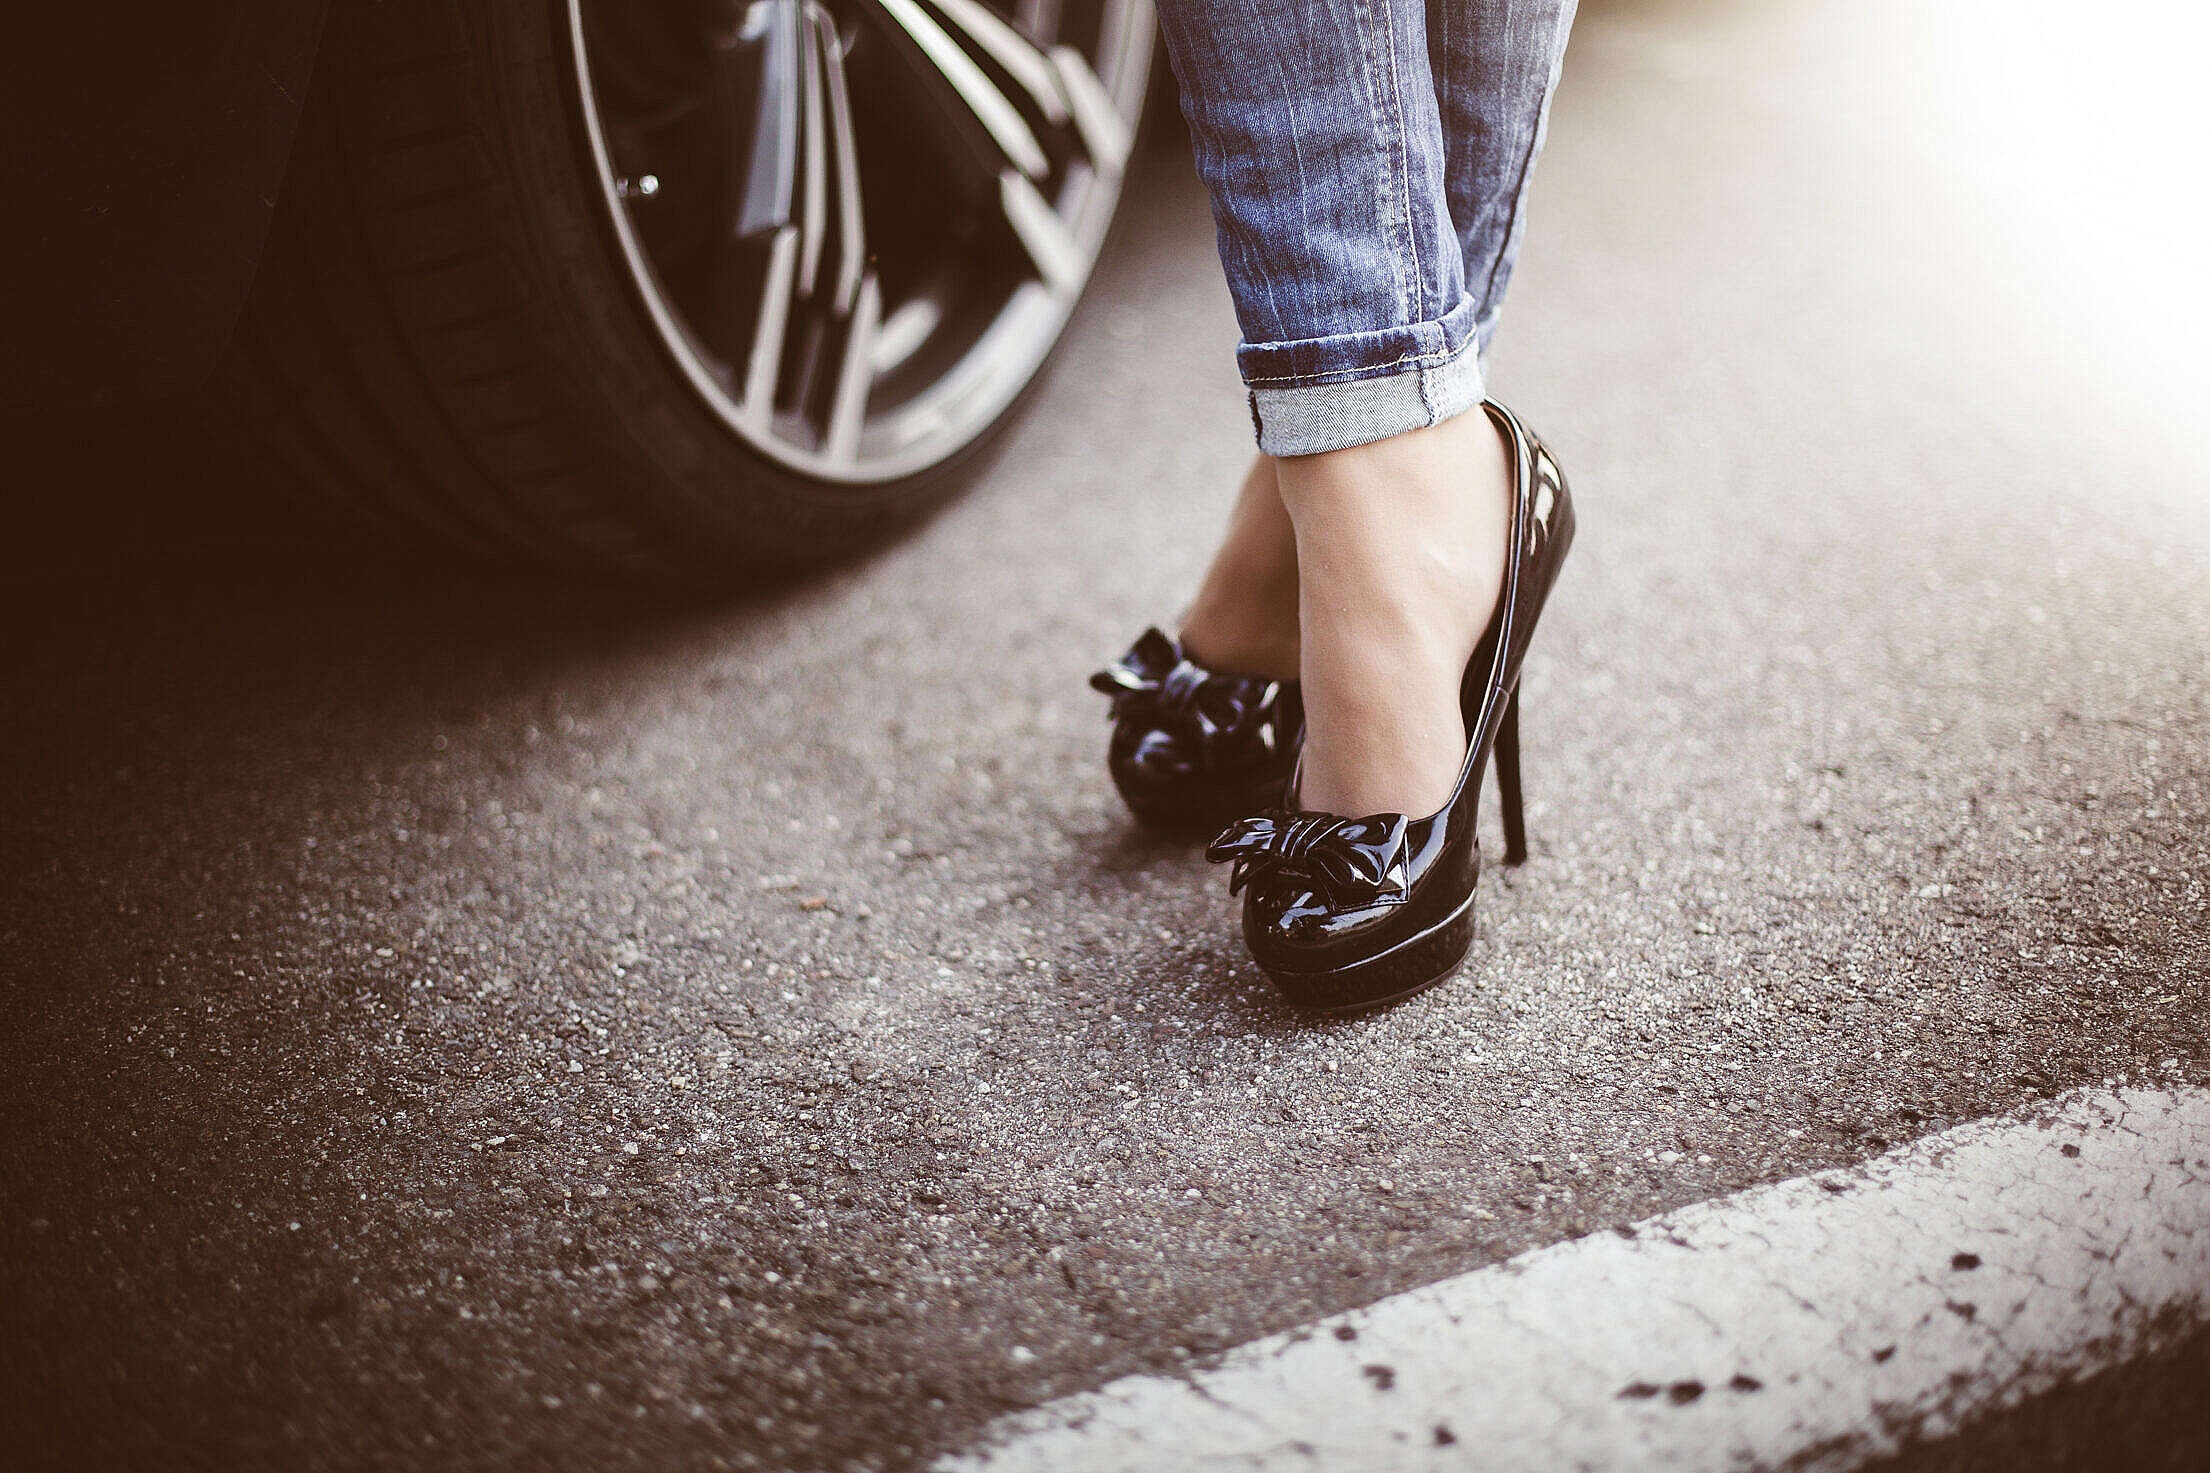 Woman in Black High Heels Standing Next to a Car #2 Free Stock Photo